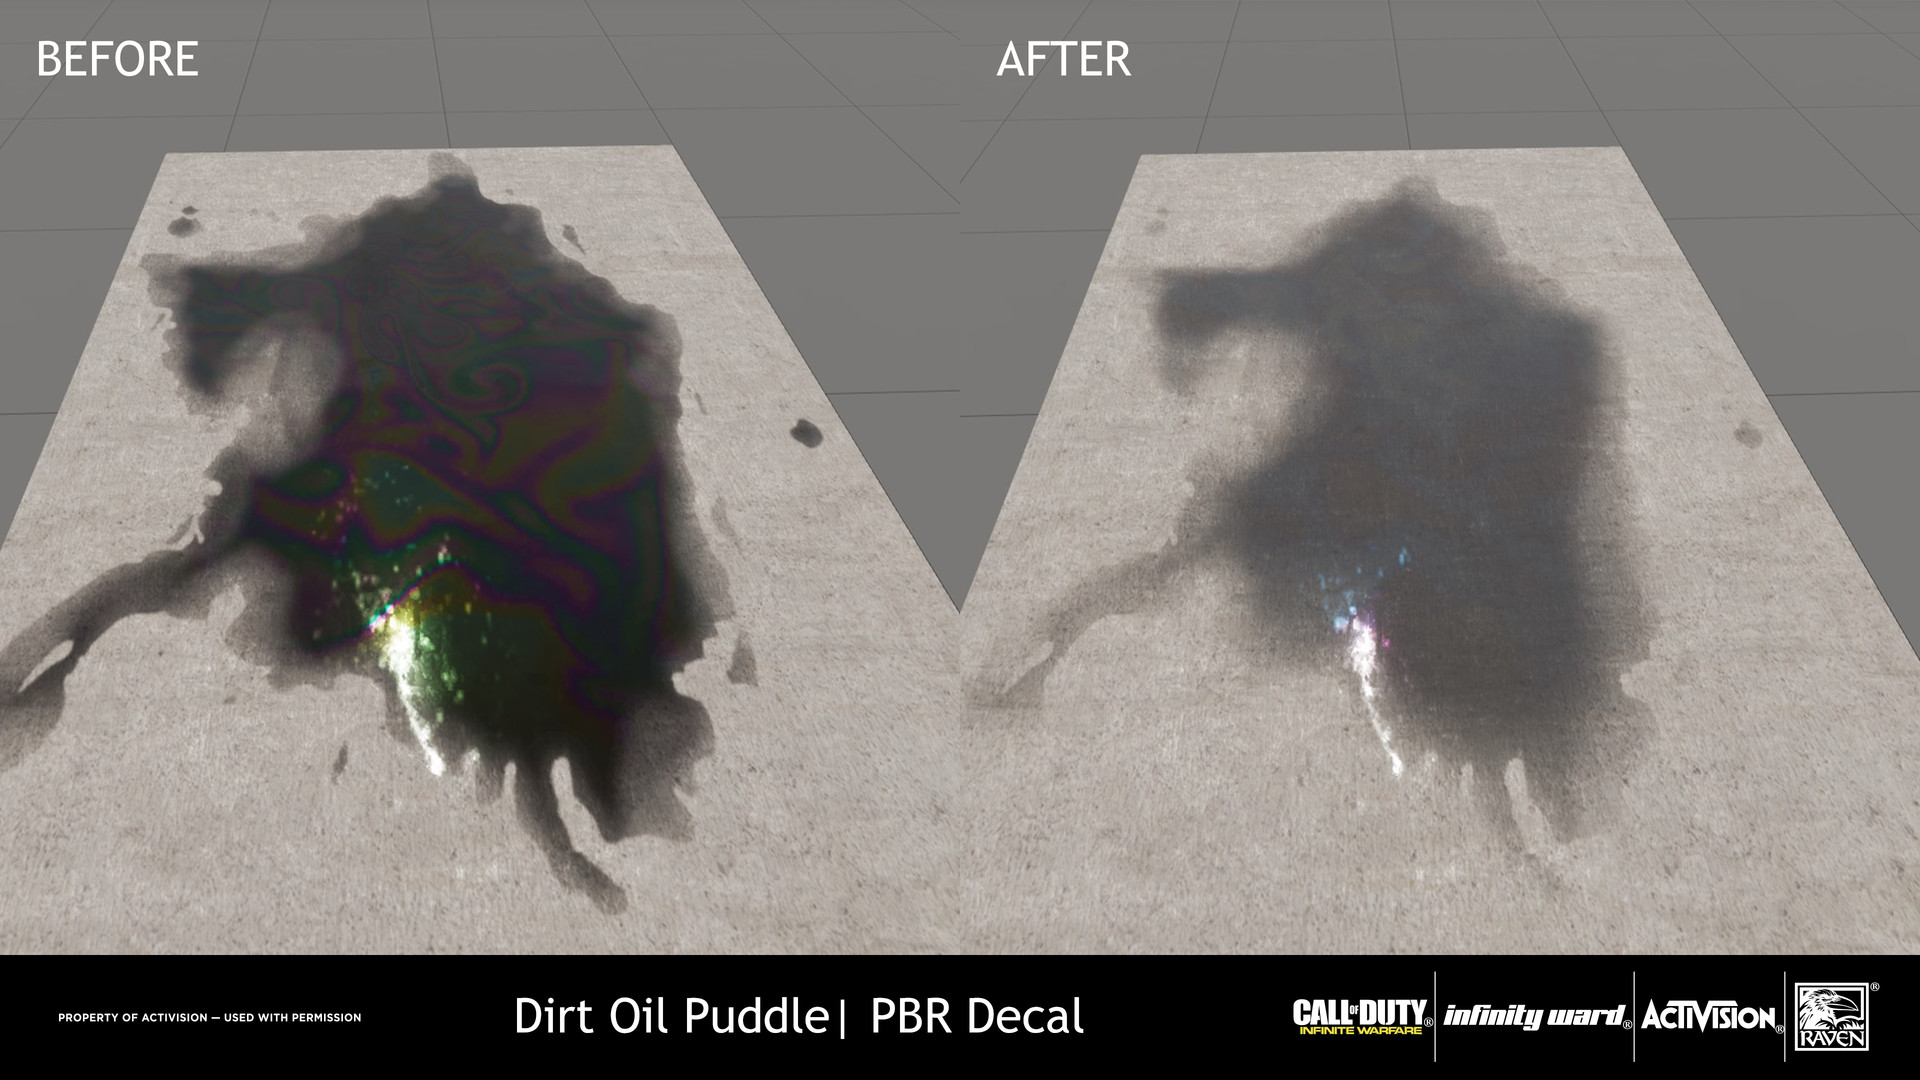 For the Oil puddle, Iridescence mask were generated and the value for the highlight was lowered. Diffuse value was adjusted to be lighter while still having a dark value for the opaqueness.